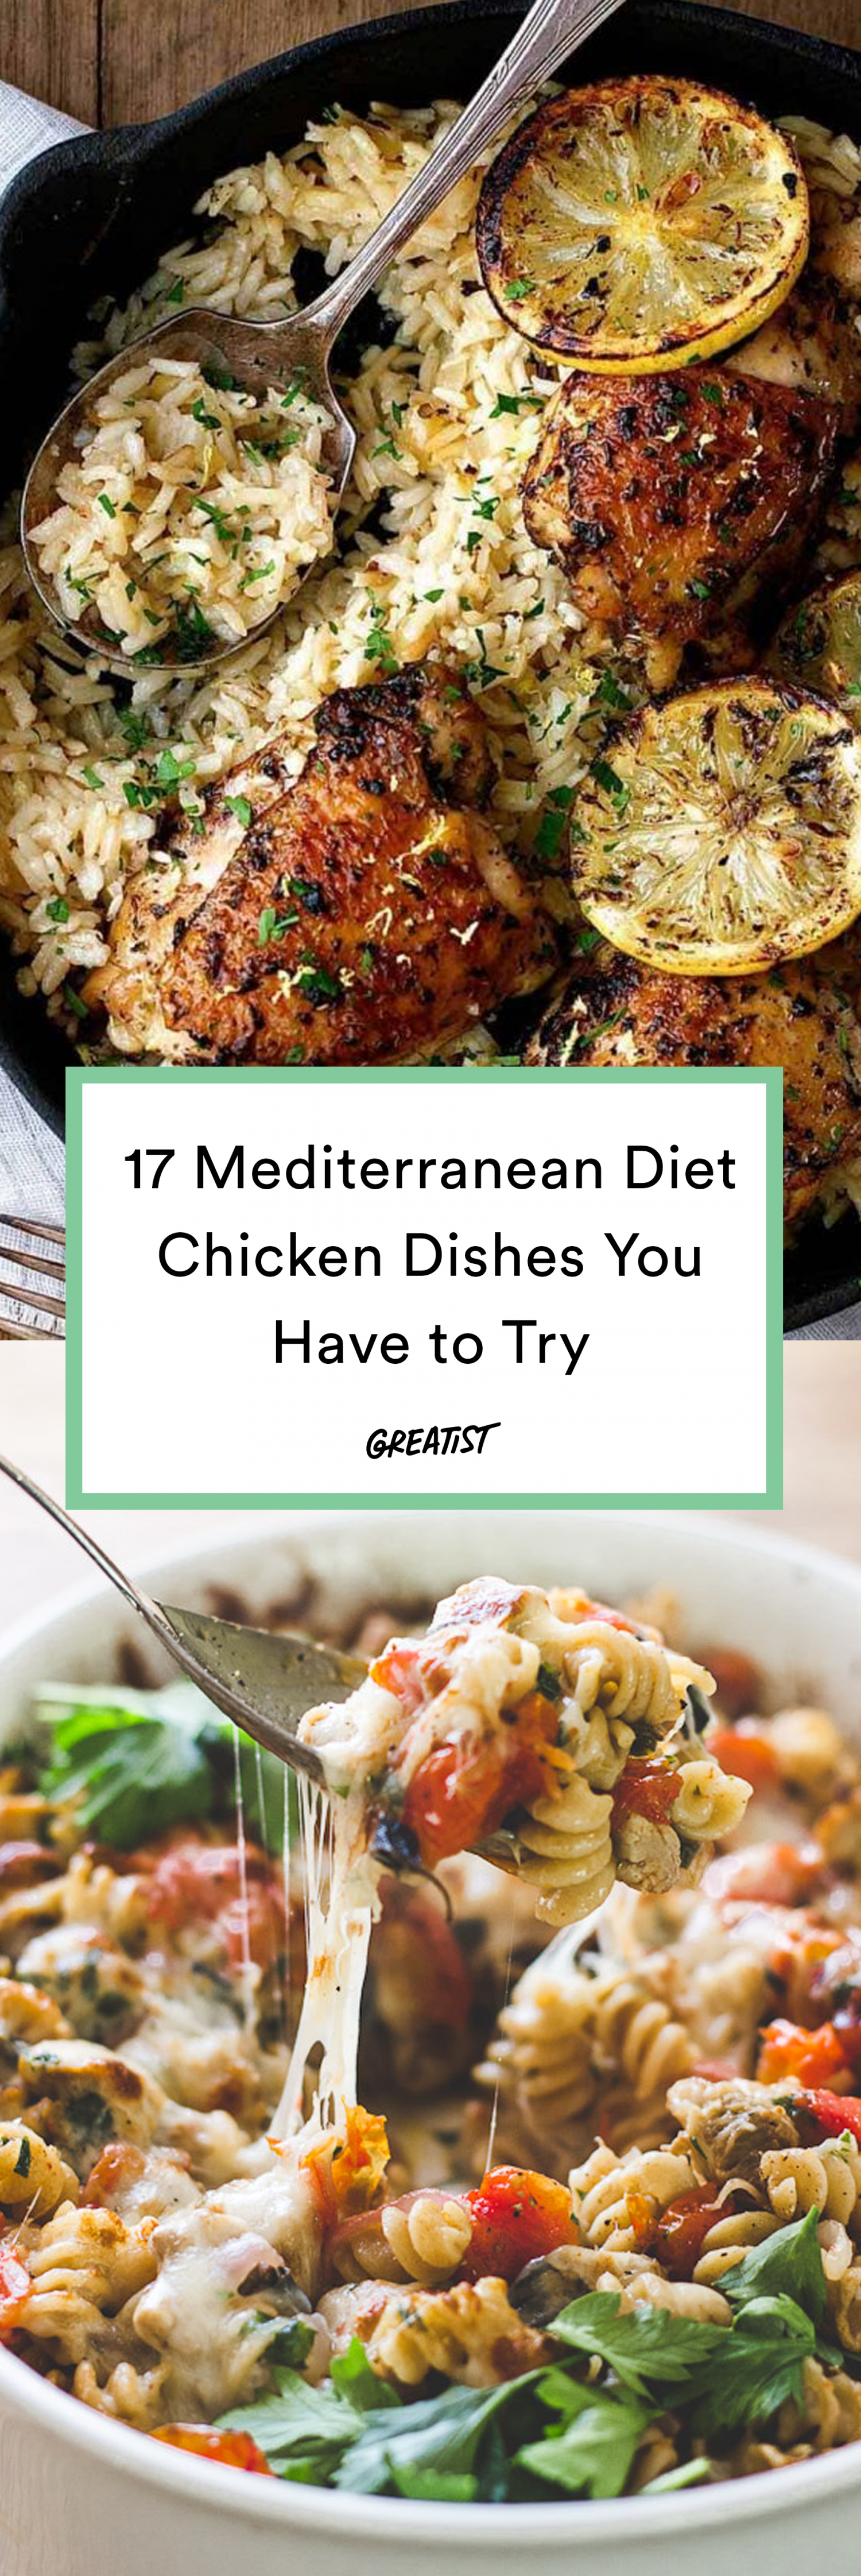 Photo of 17 Mediterranean Diet Chicken Recipes to Make for Weeknight Dinners